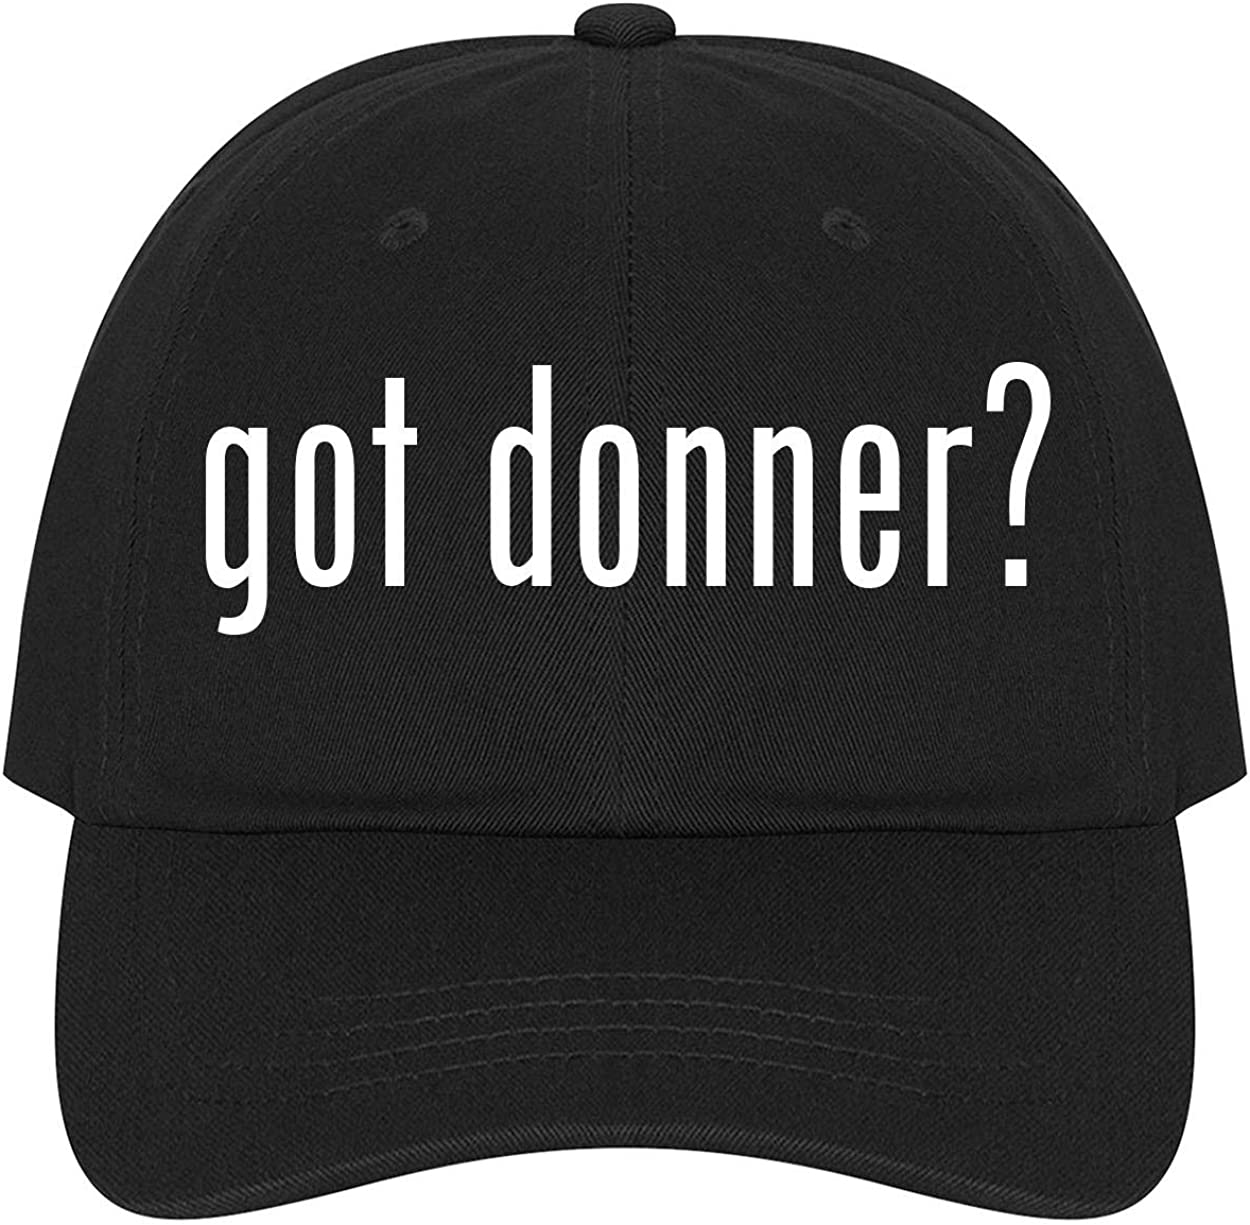 A Nice Comfortable Adjustable Dad Hat Cap The Town Butler got Donner?